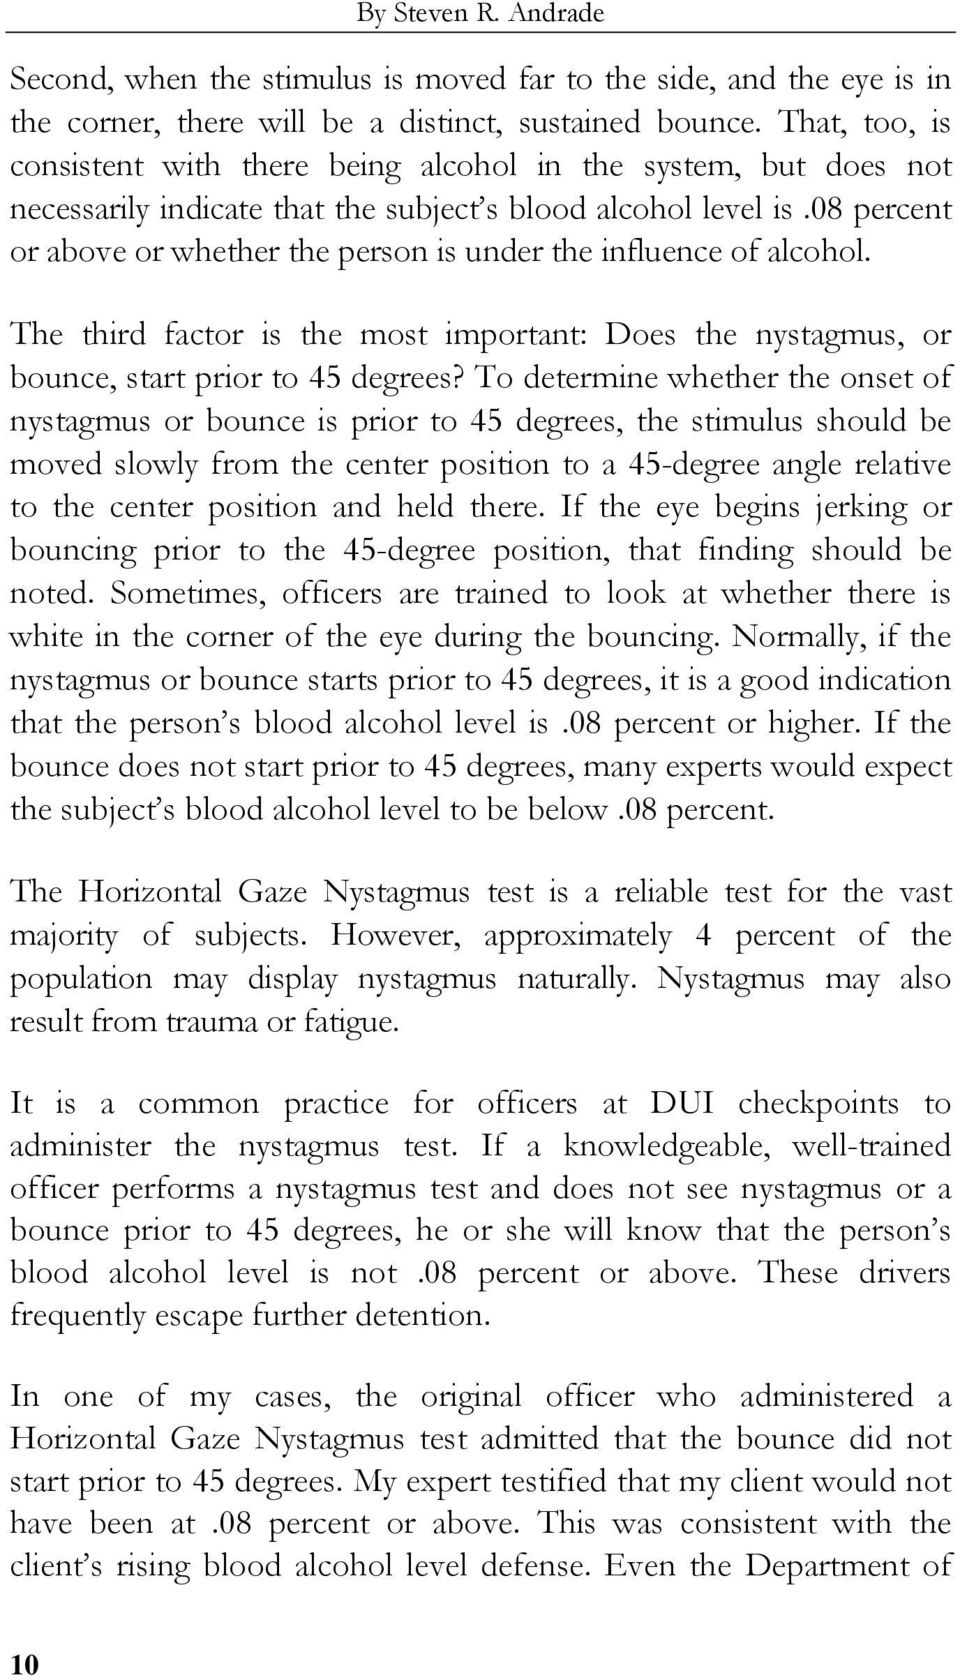 08 percent or above or whether the person is under the influence of alcohol. The third factor is the most important: Does the nystagmus, or bounce, start prior to 45 degrees?